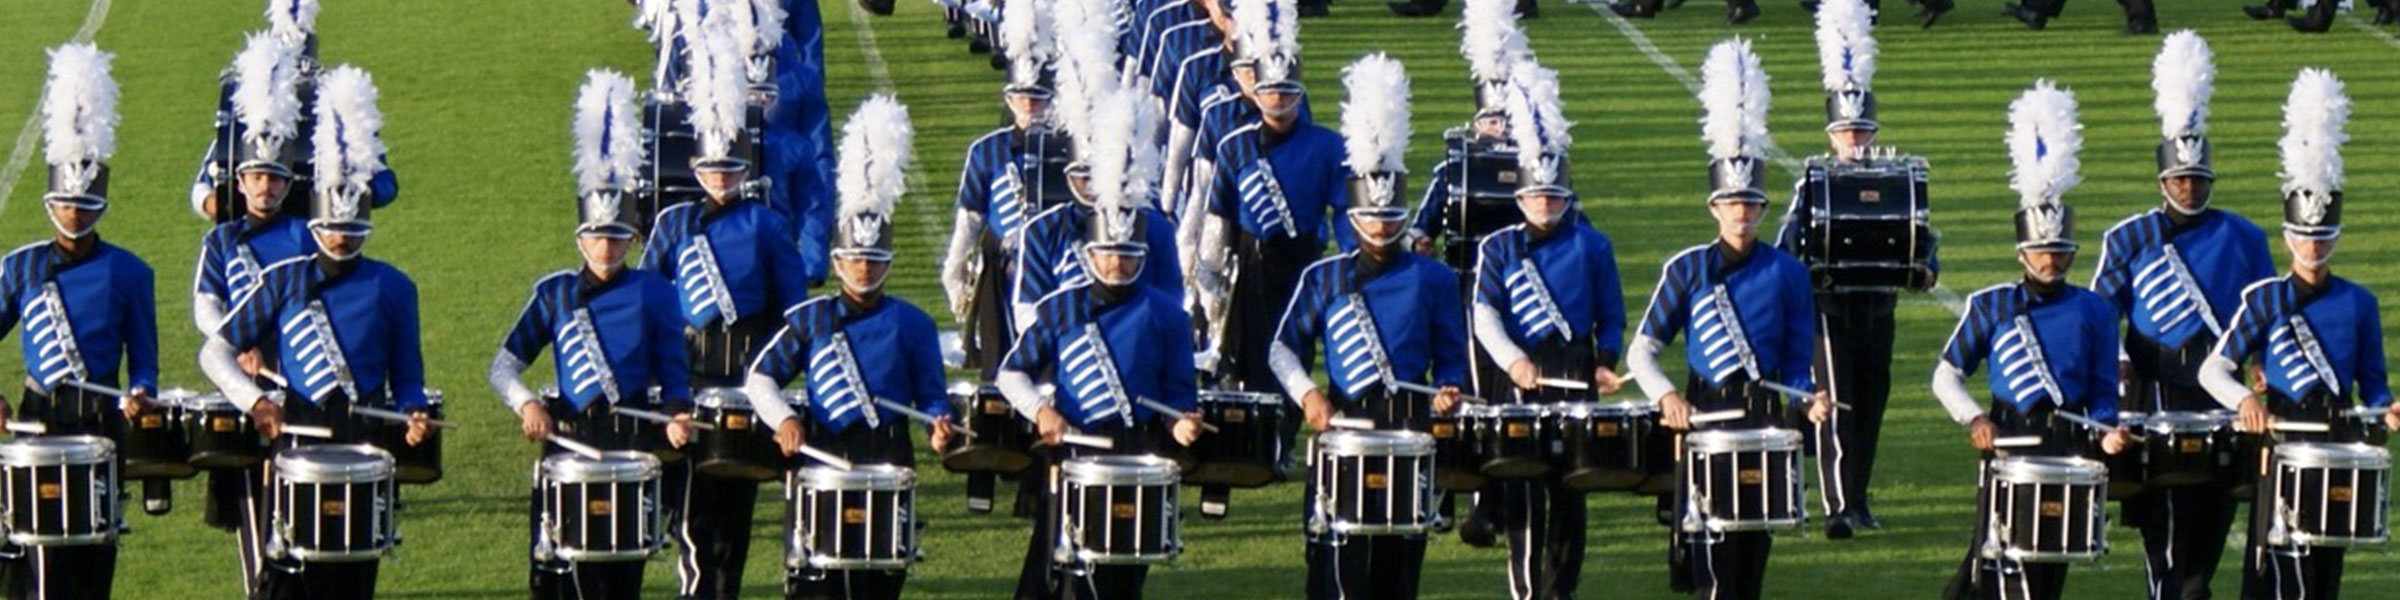 the bd international corps bdi is made up of recent performers of the world champion blue devils as well as eight other world cl corps throughout the